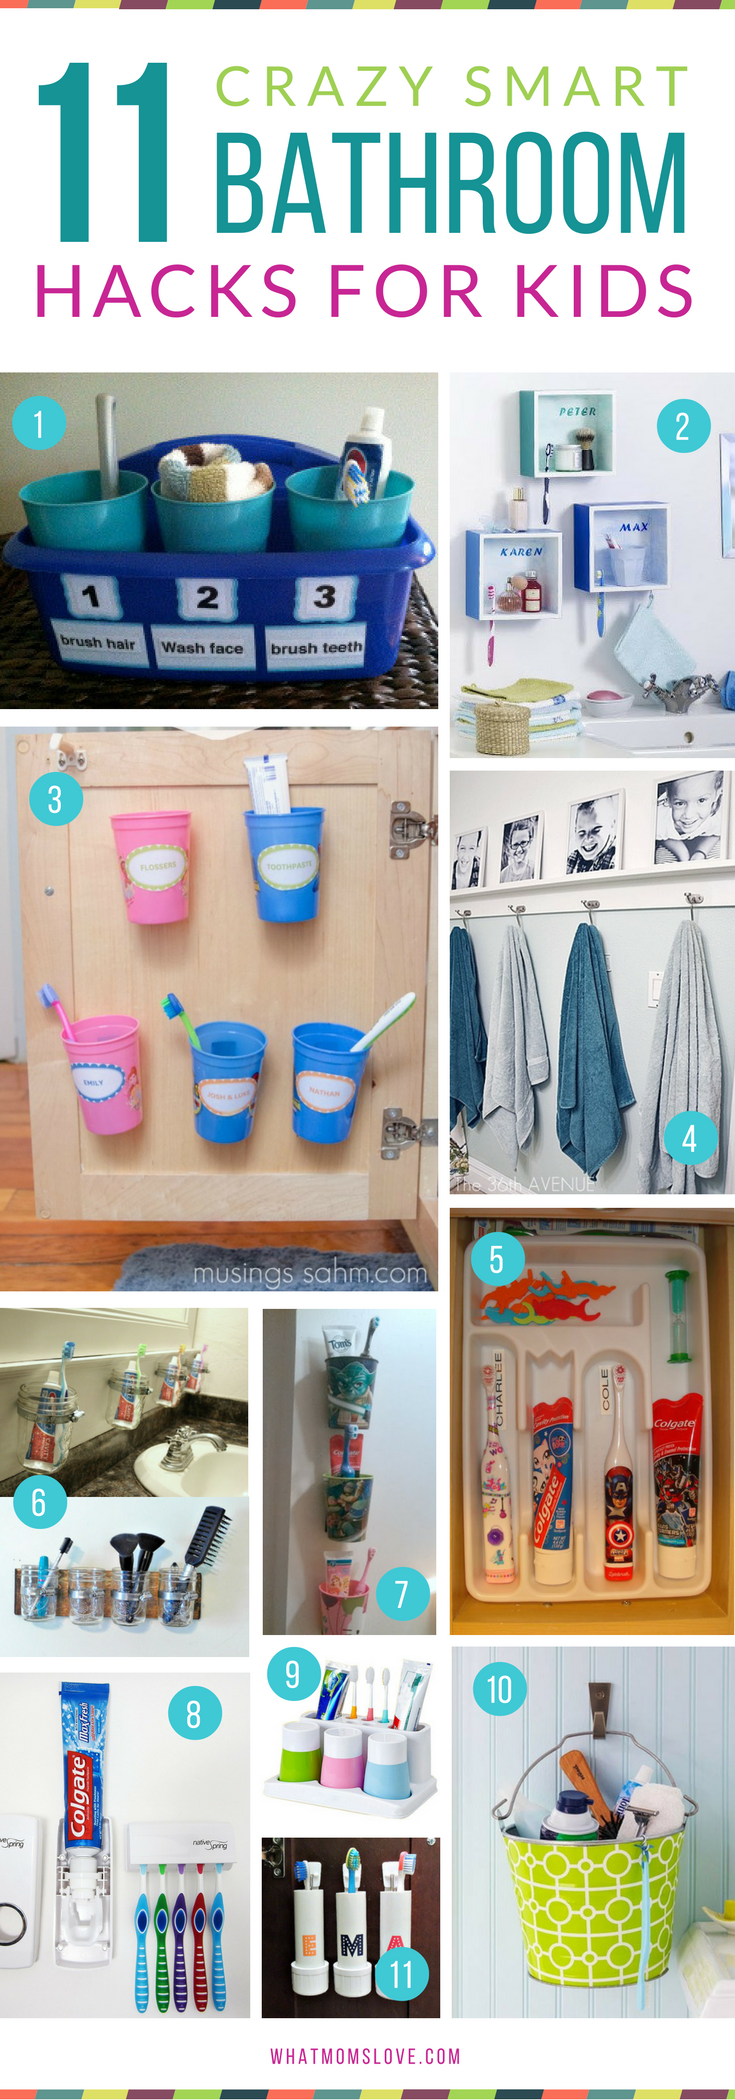 Genius Hacks For An Organized Bathroom Tips And Tricks For Stress Free  Mornings With Kids   Perfect For Getting Them Into A Back To School Routine! Awesome Ideas